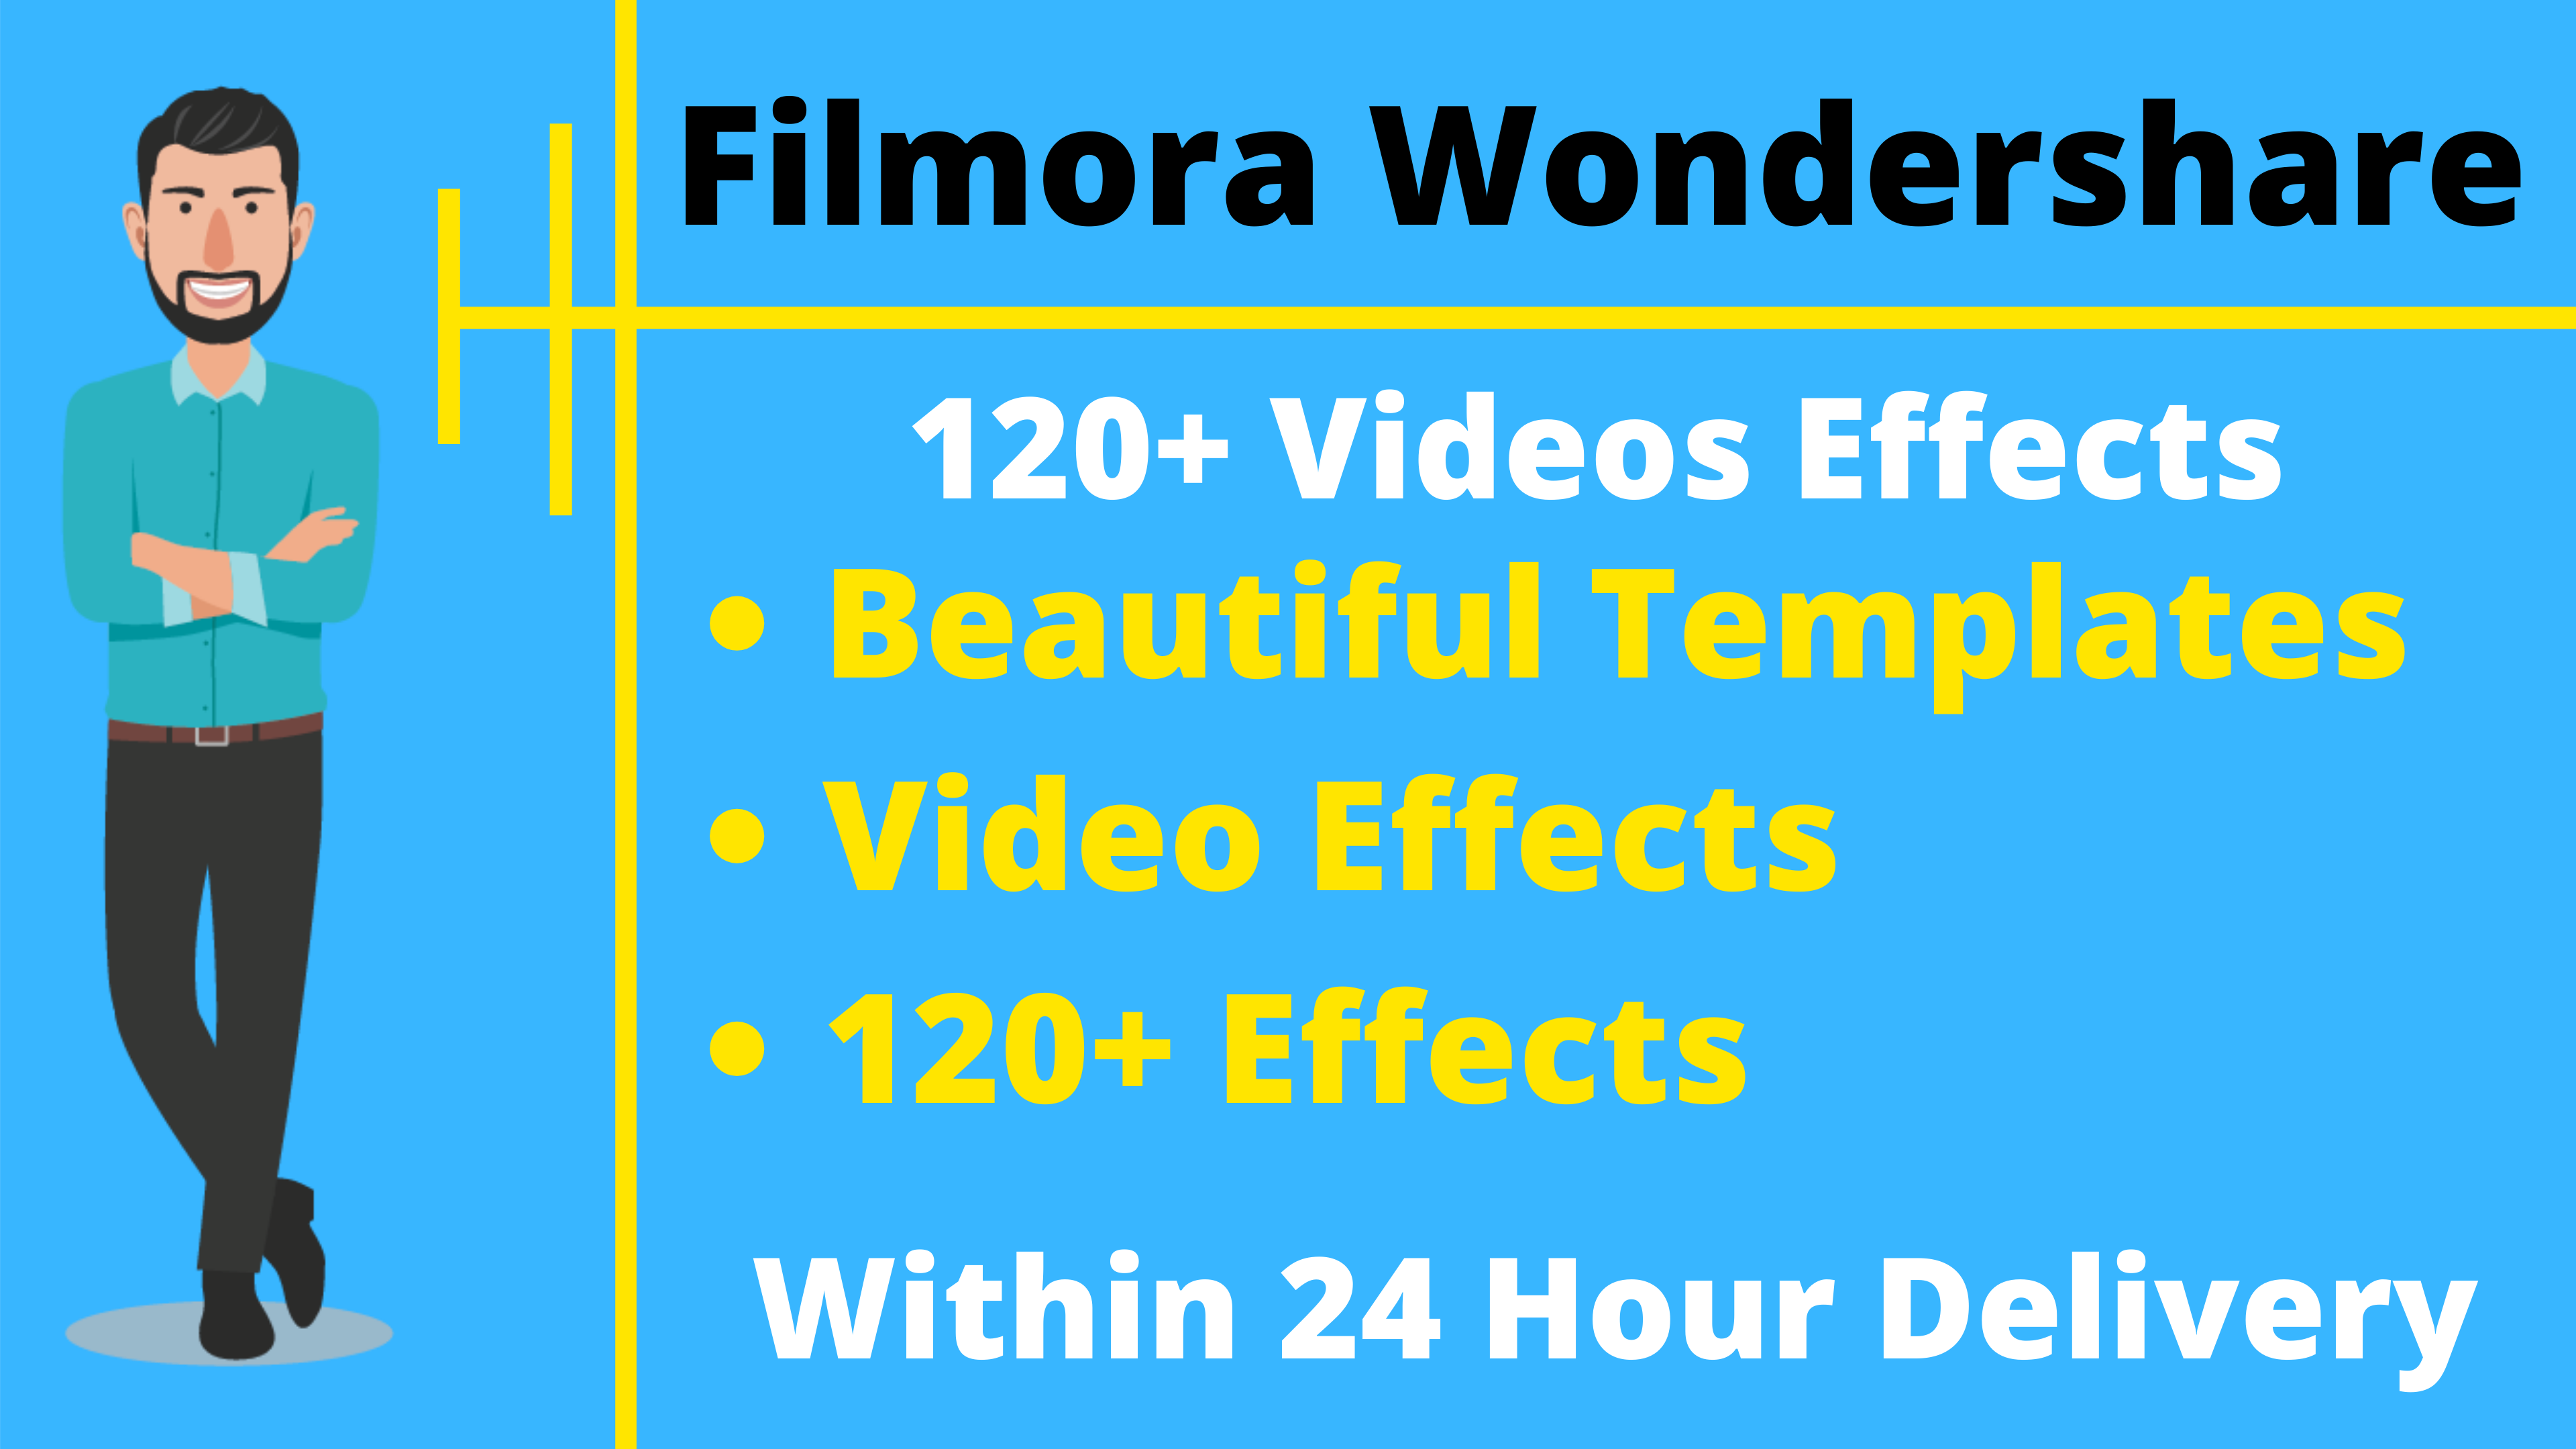 Filmora Wondershare 120+ Premium Templates Video Effects